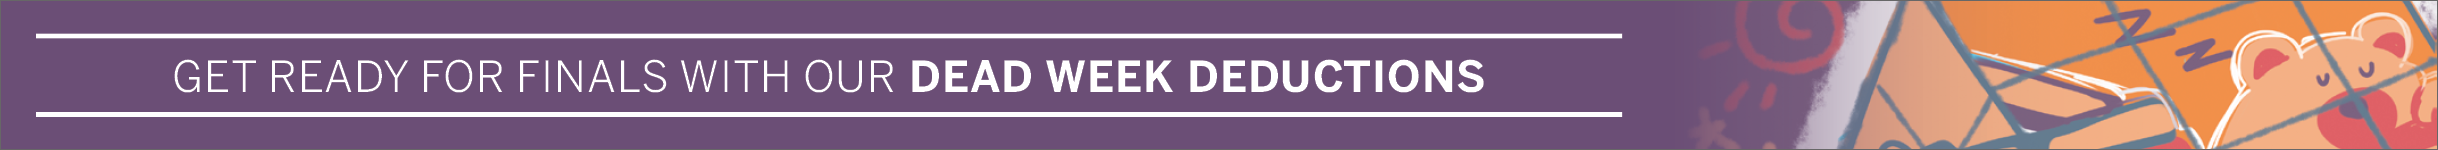 Get ready for finals with our dead week deductions